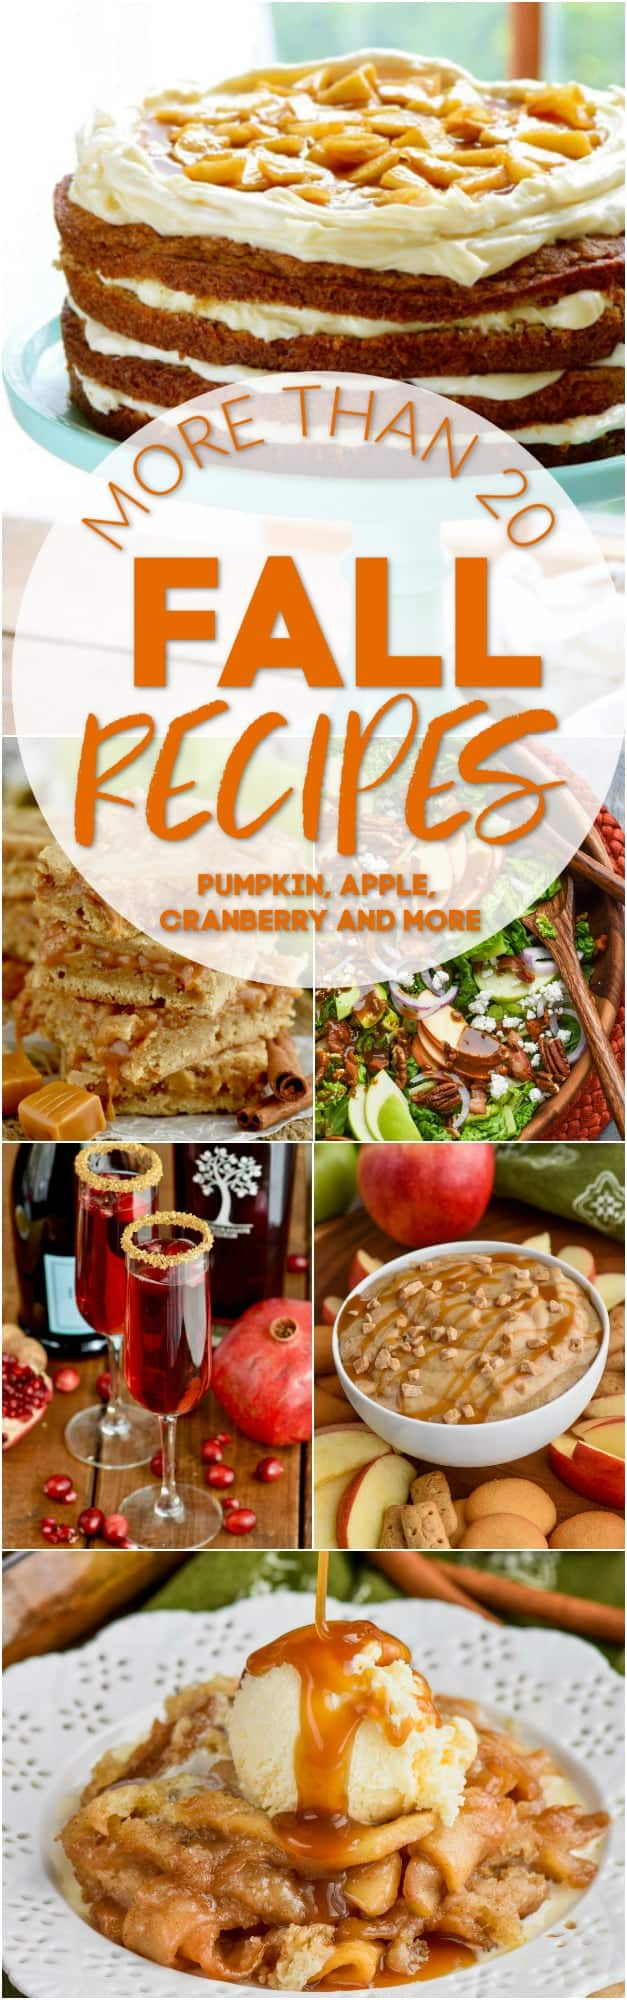 collage of fall recipes that ranges from dips, to drinks, to entrees, and even dessert.